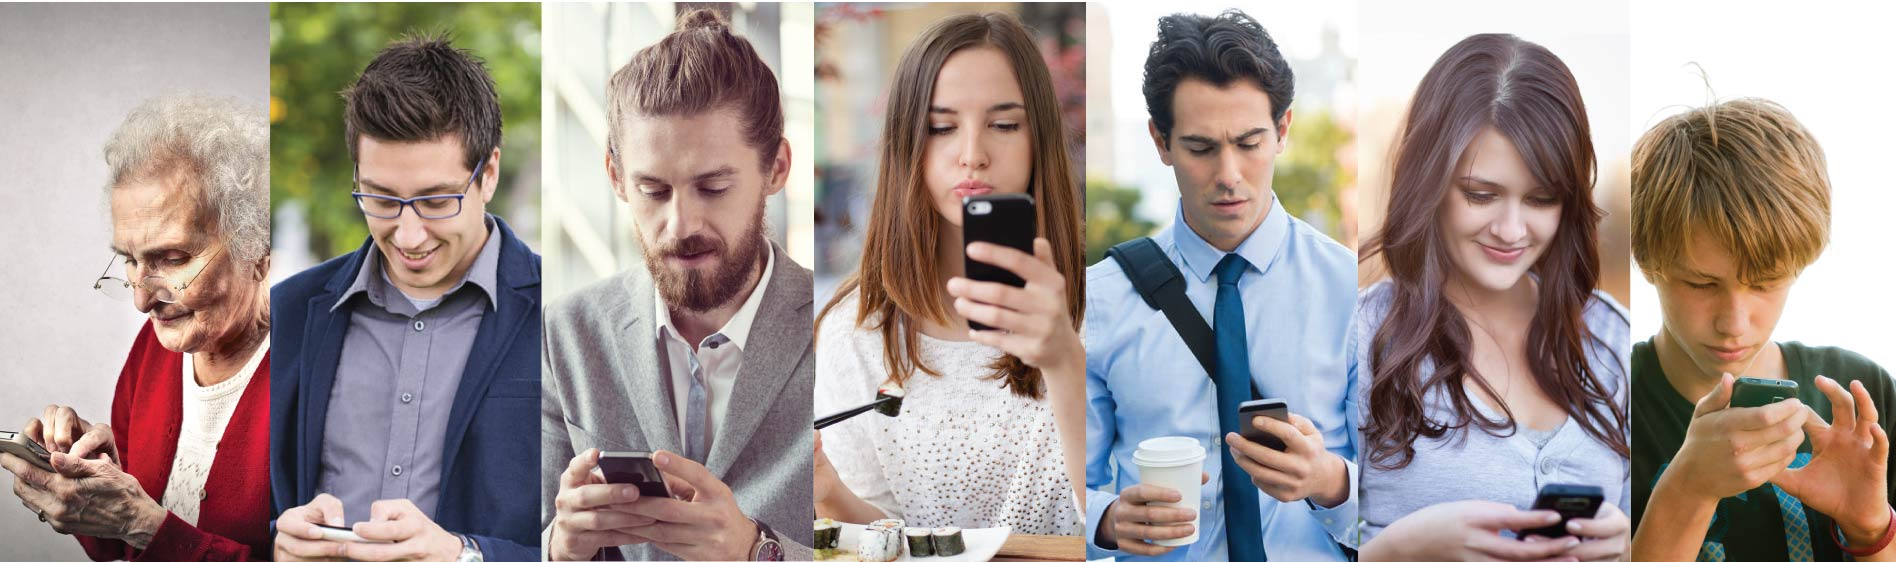 Text messaging - Affordability is probably the biggest reason why it can continue to grow and evolve in the years ahead.